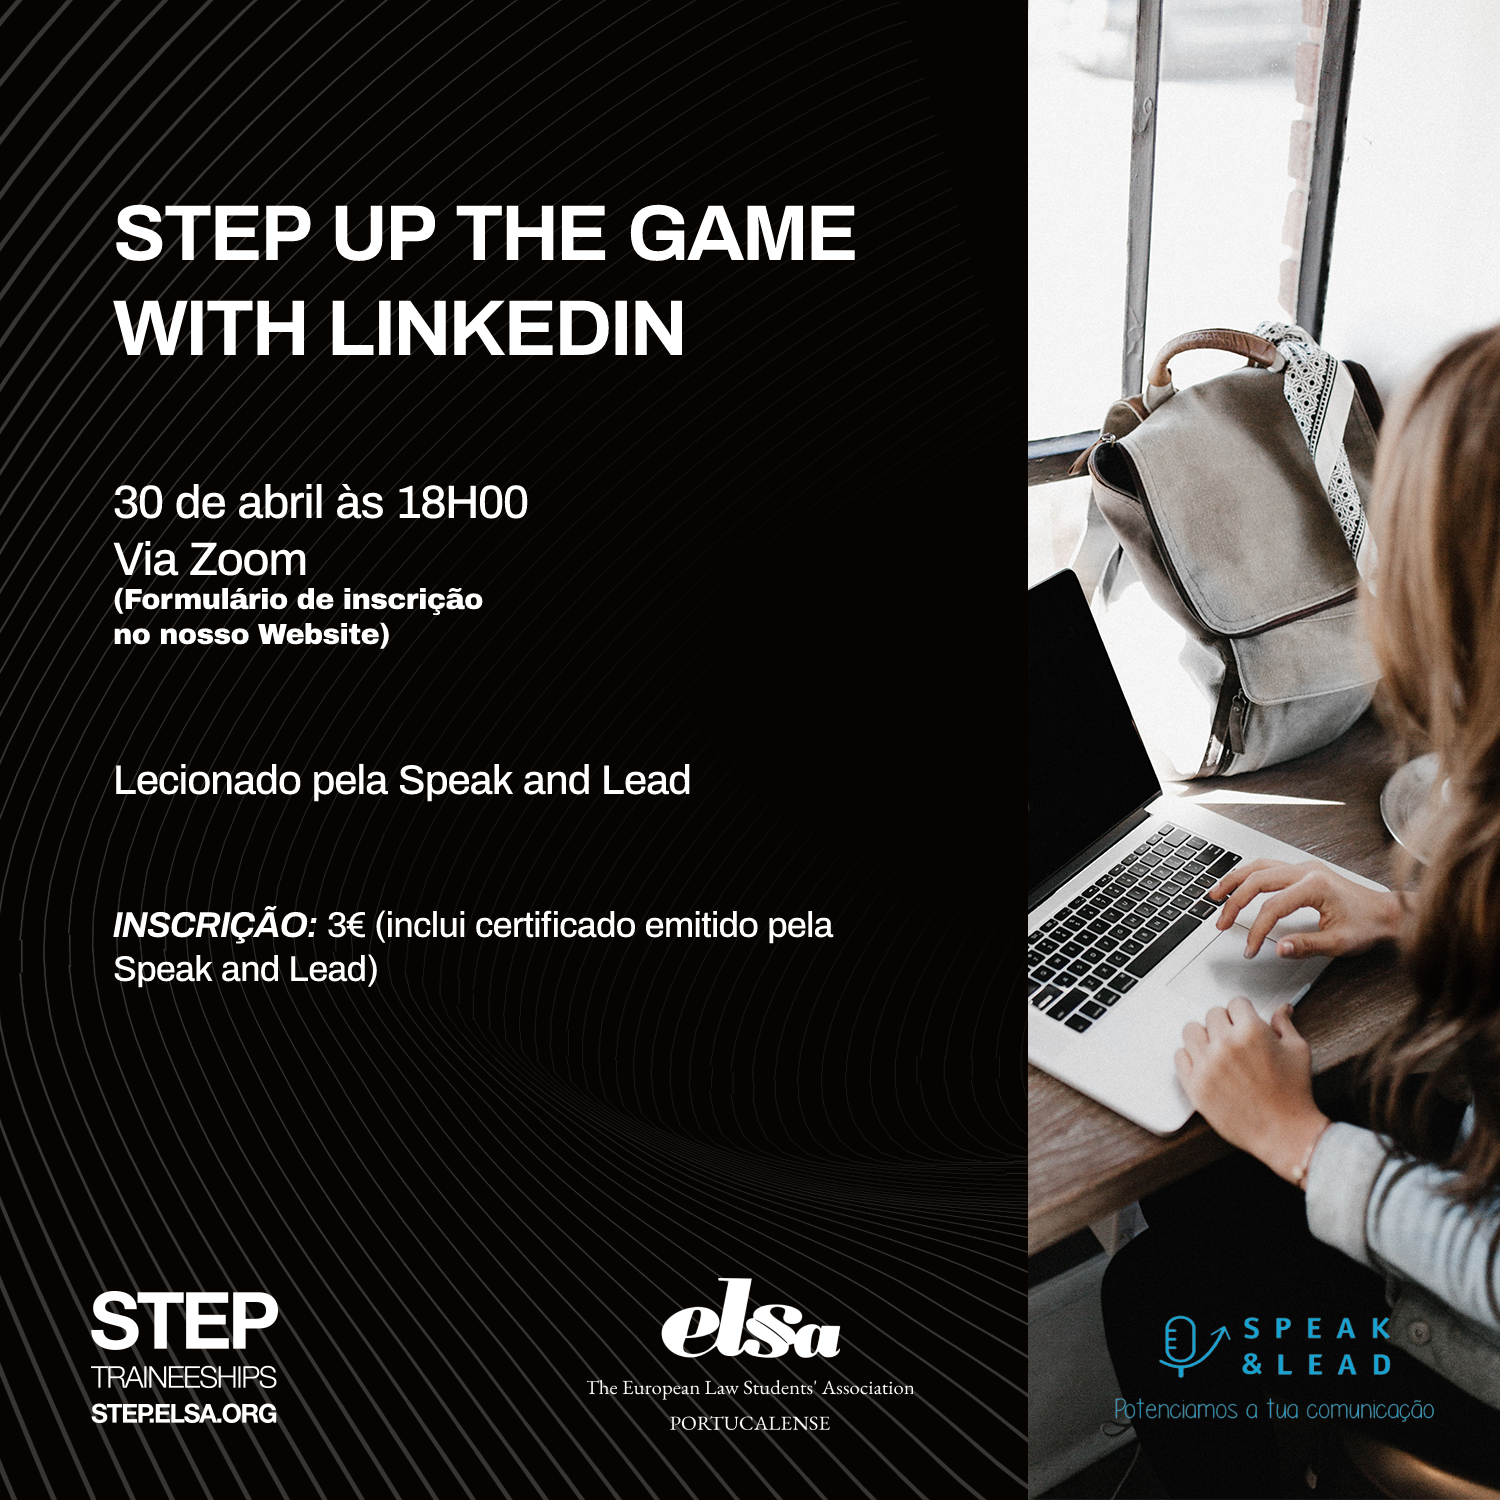 Step up the game with Linkedin